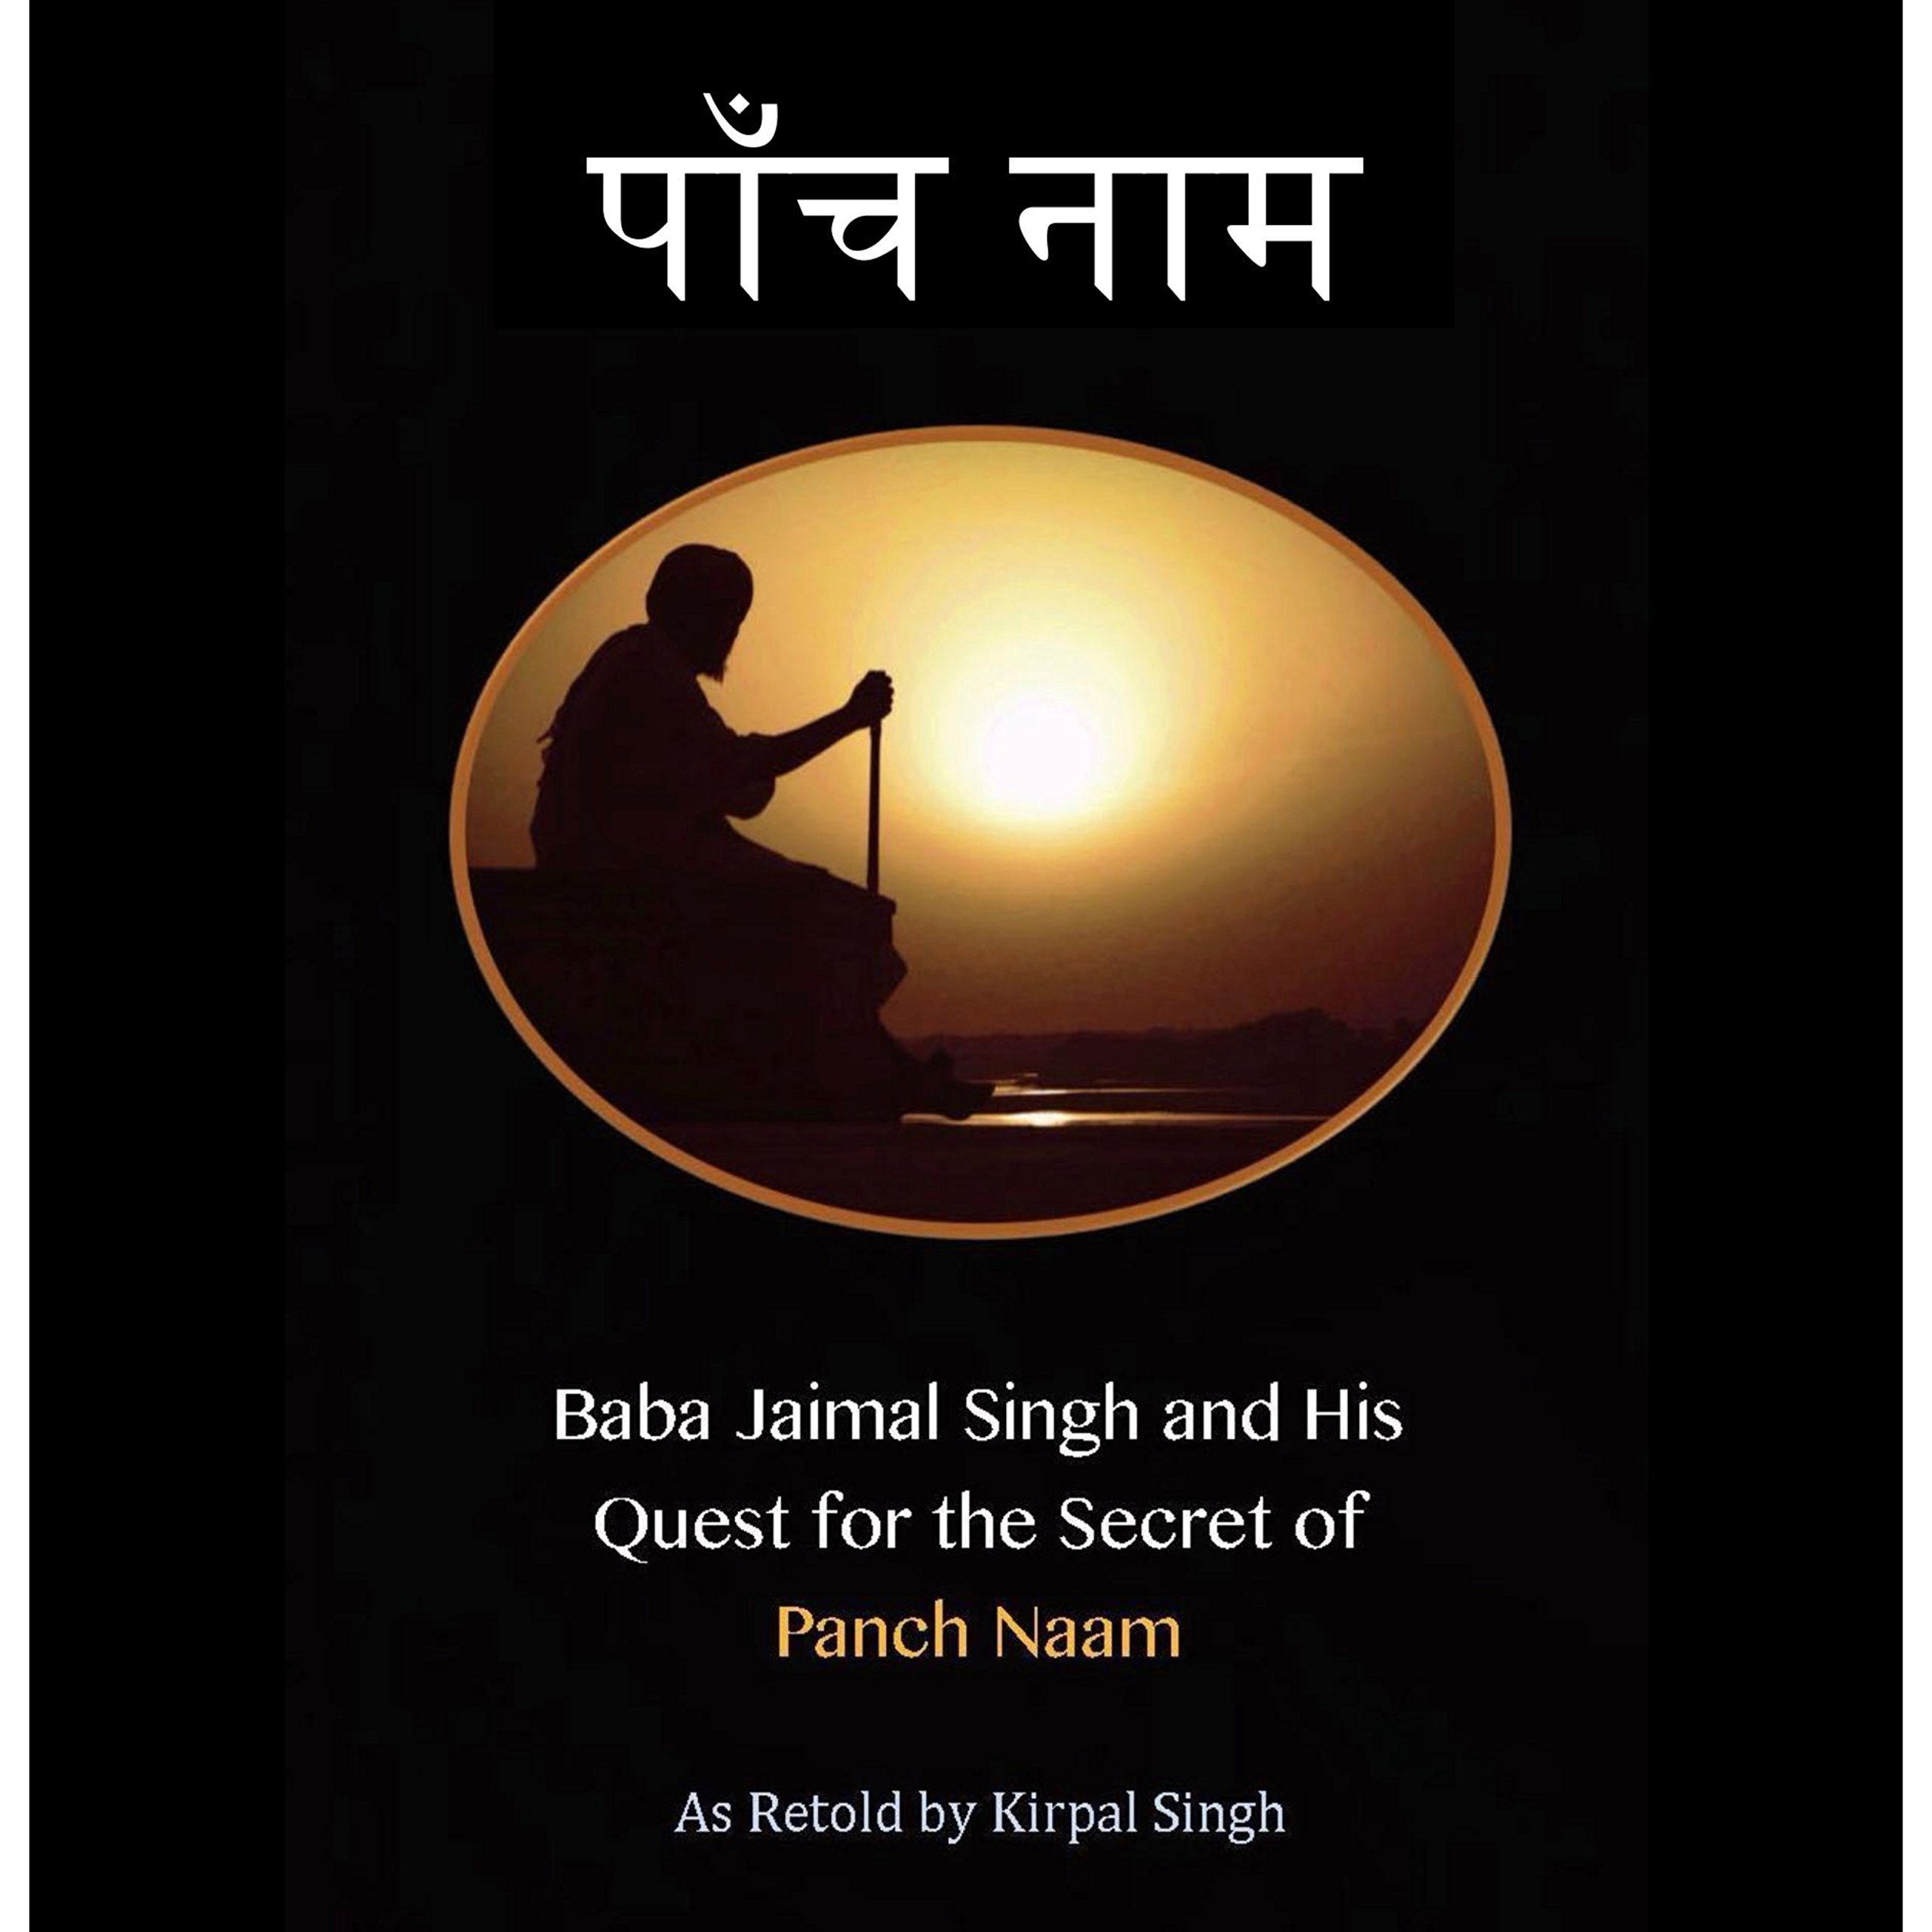 Baba Jaimal Singh and His Quest for the Secret of